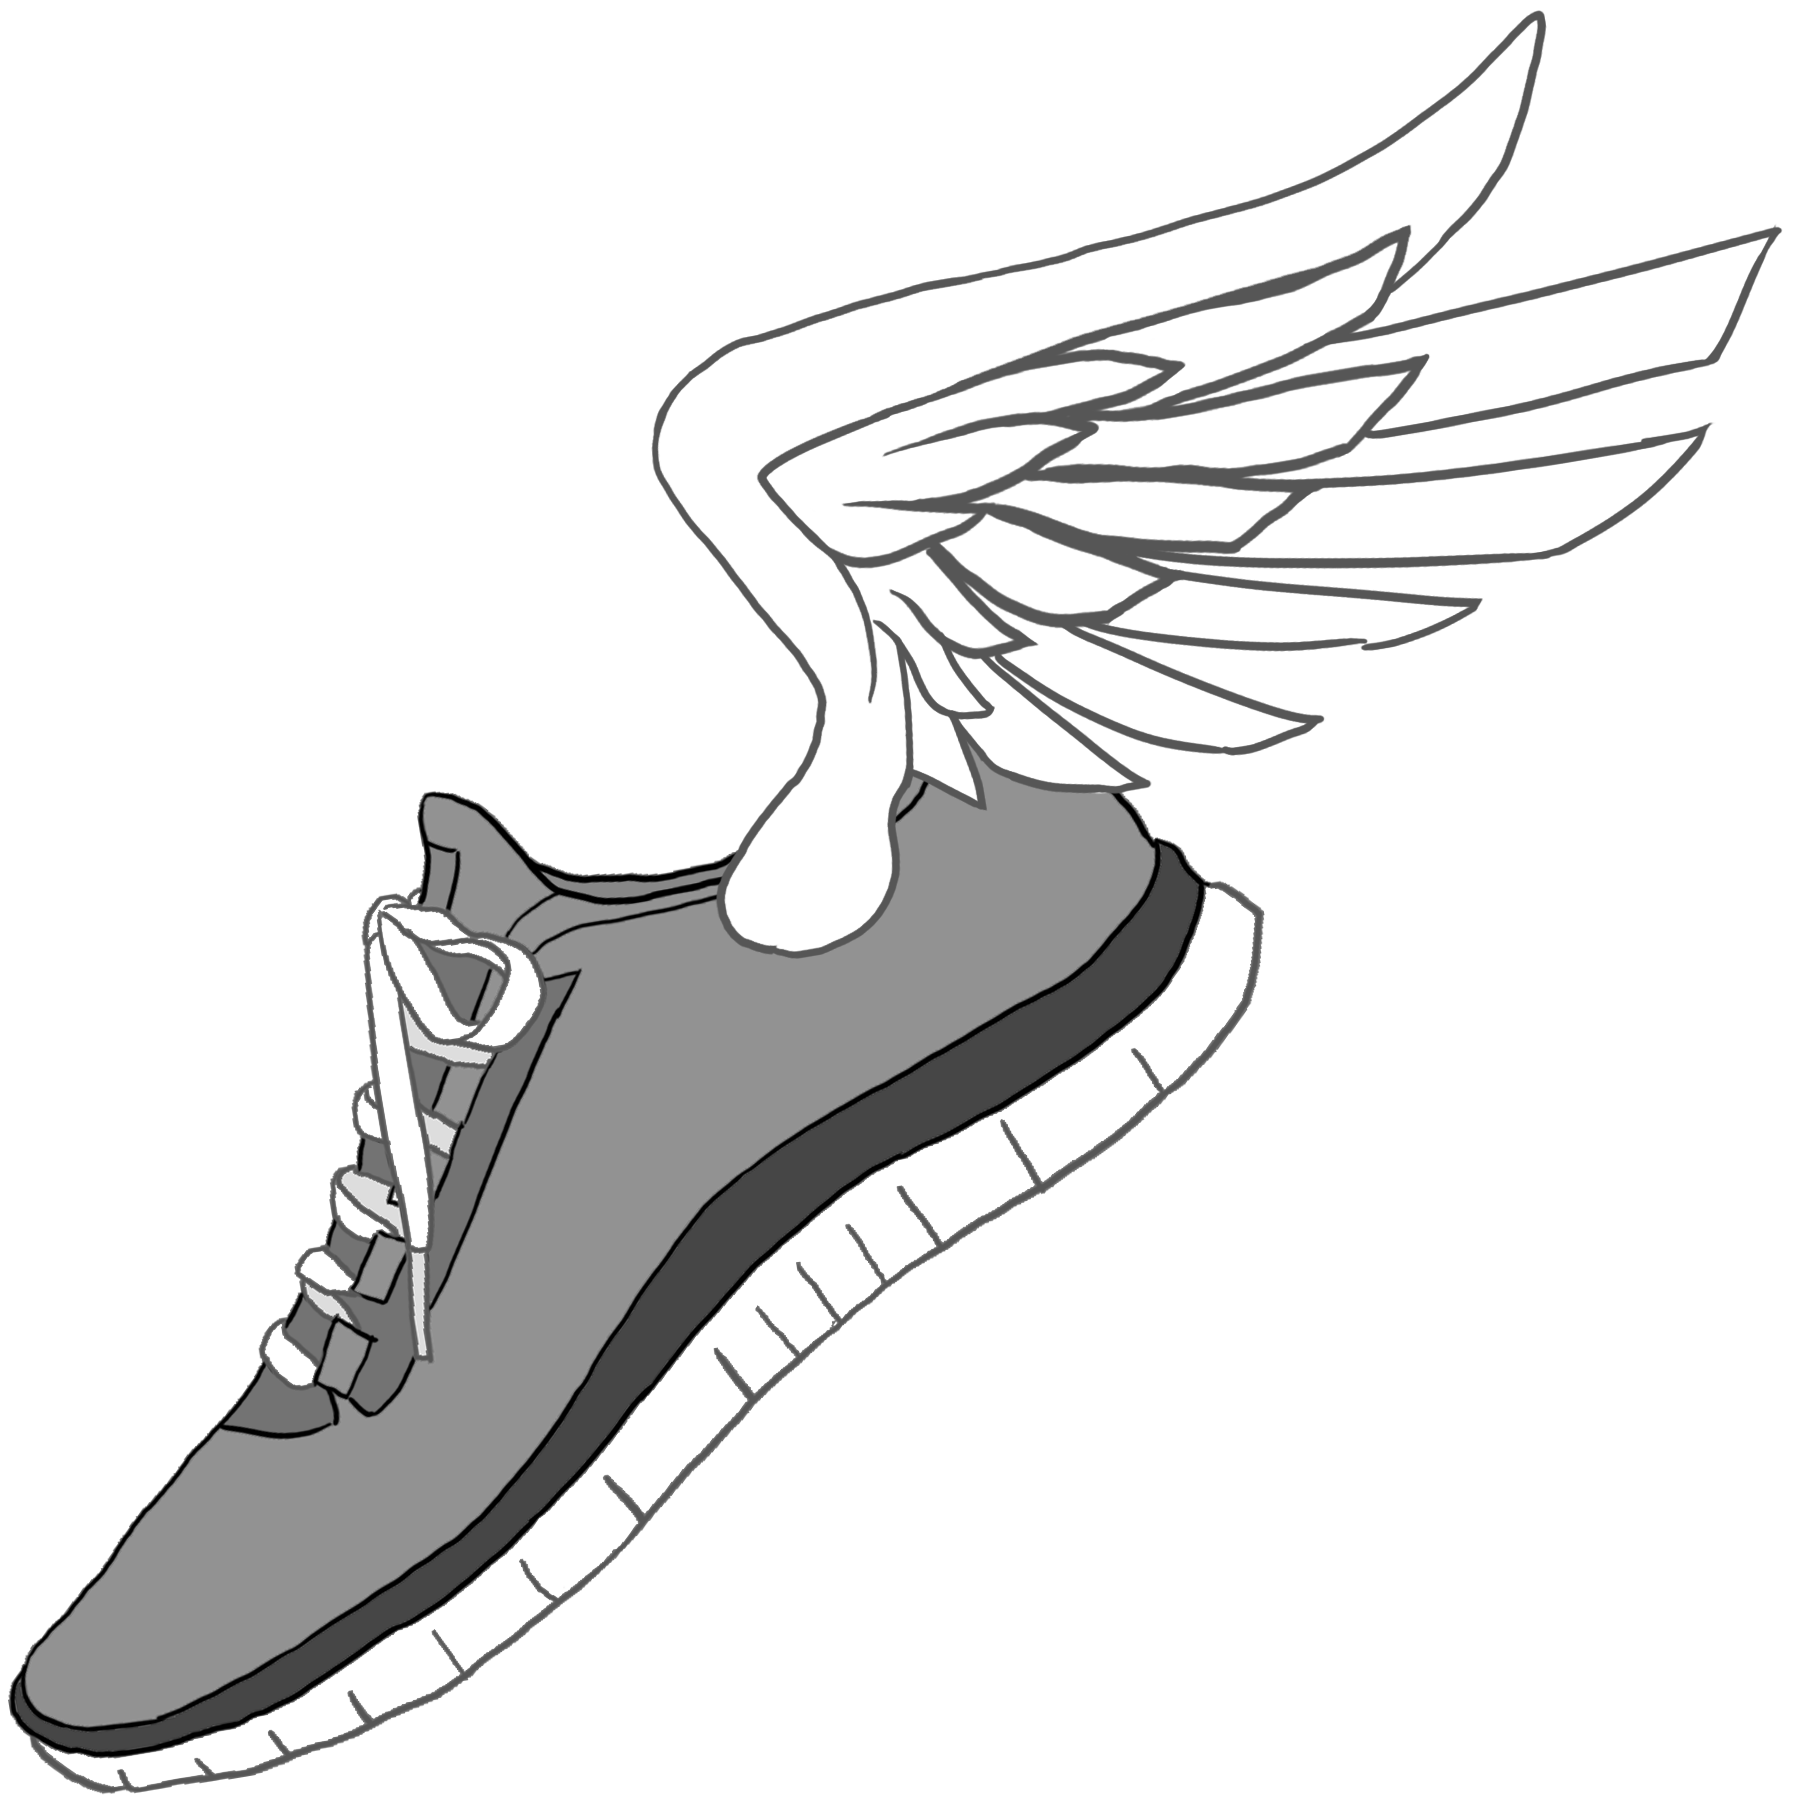 1800x1800 Medals Drawing Shoe Transparent Png Clipart Free Download